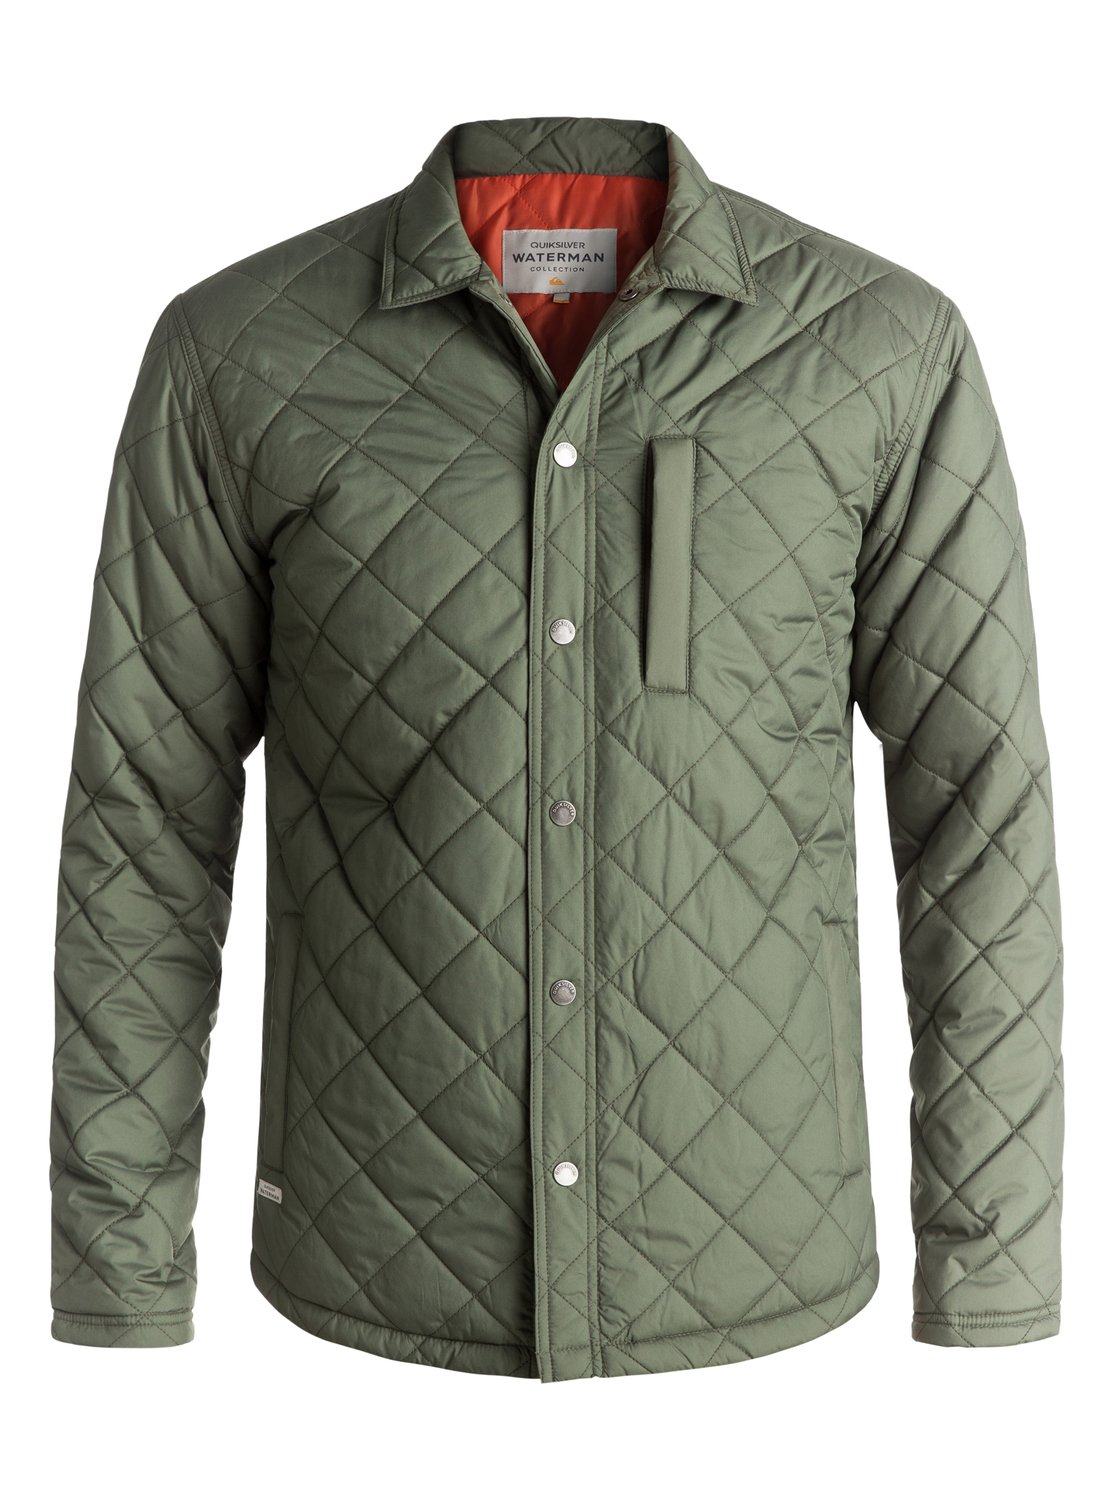 Quiksilver Waterman Mens Puffed up Quilted Jacket Beetle L Tax | eBay : mens quilted shirt - Adamdwight.com